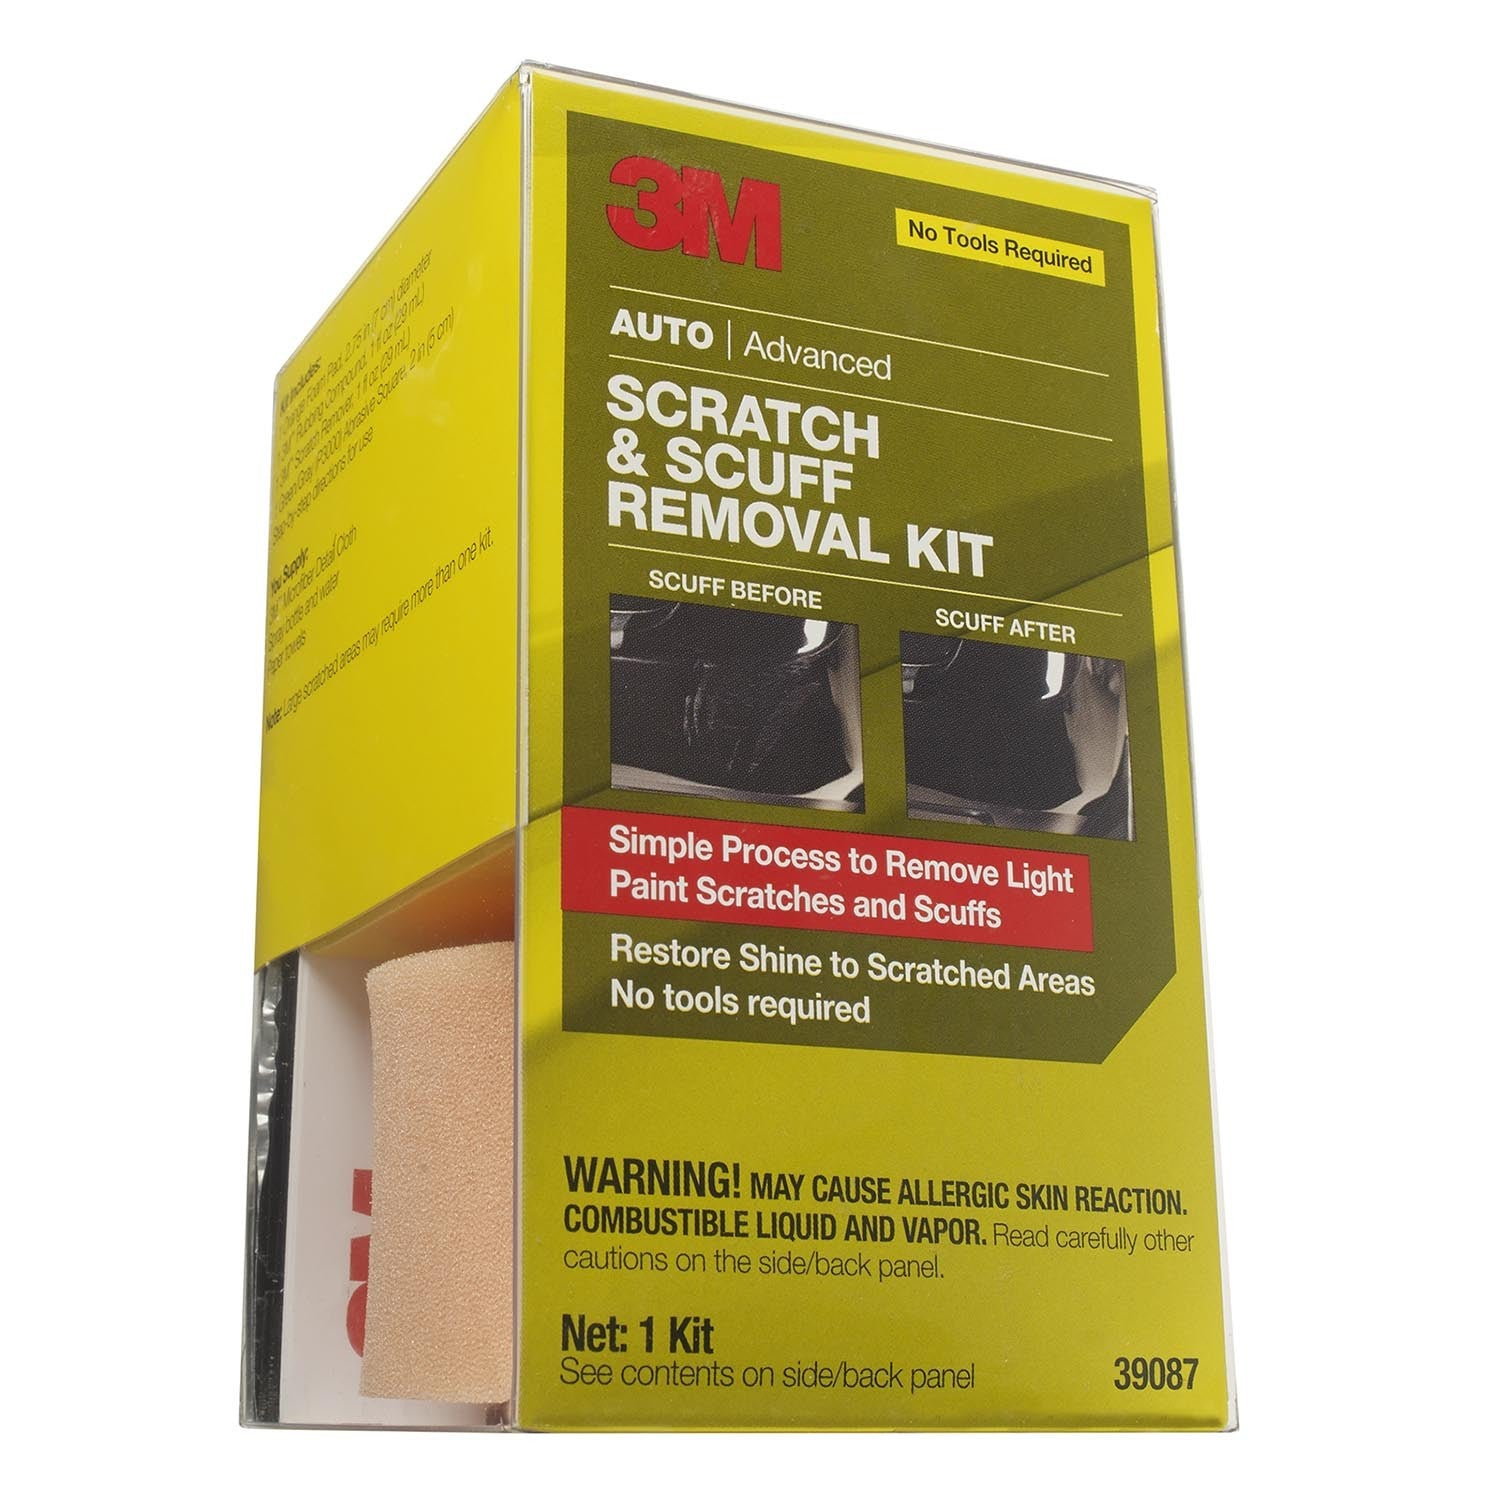 3M SCRATCH & SCUFF REMOVAL KIT